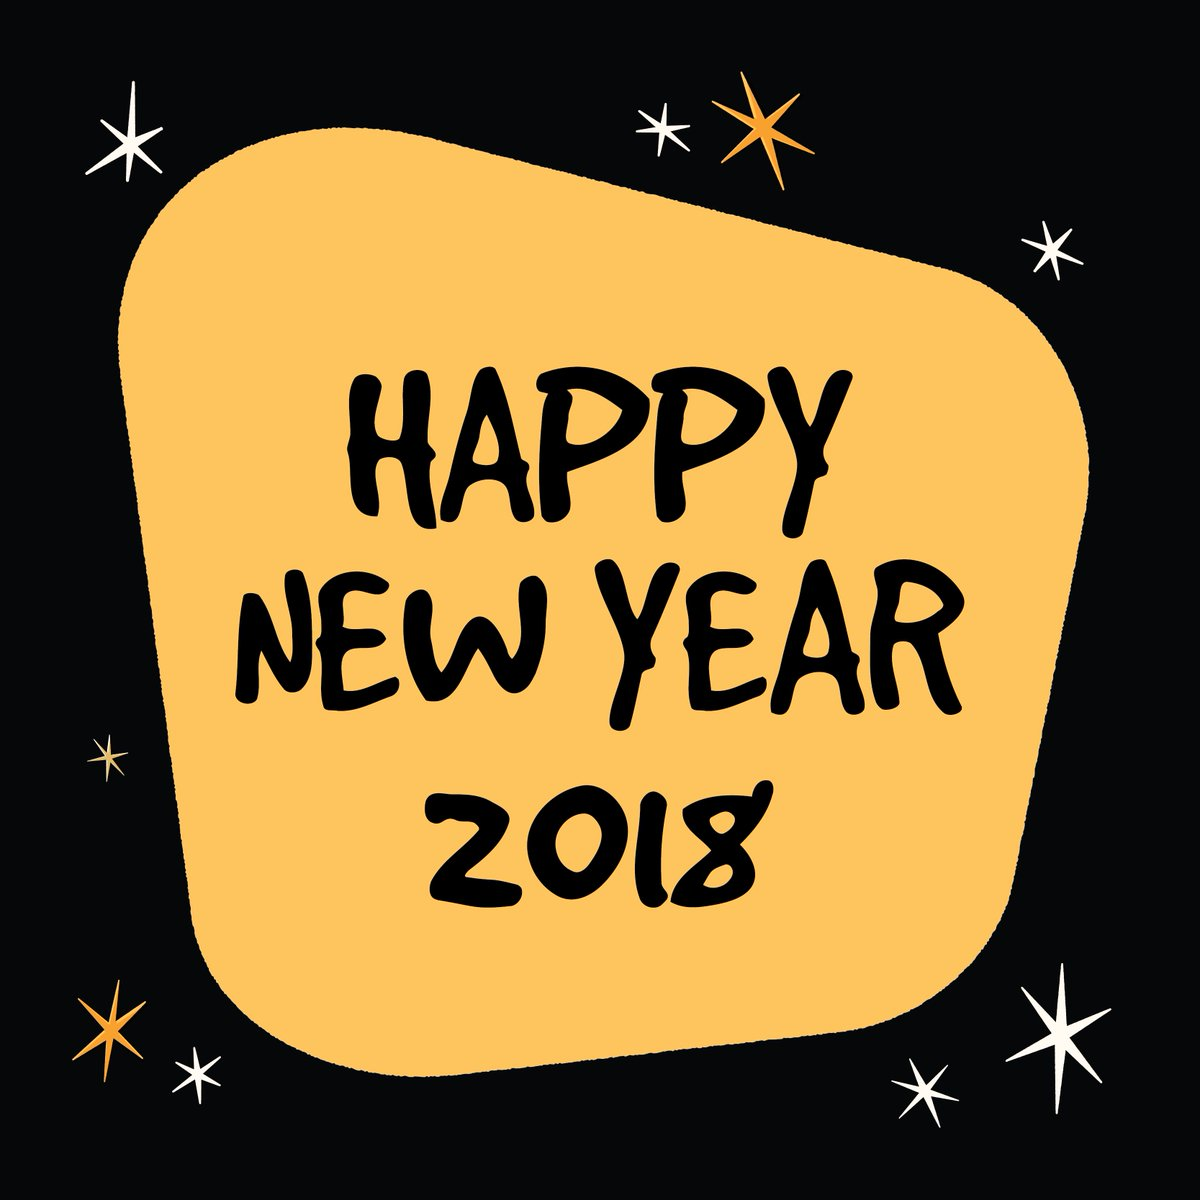 doner shabab on twitter shabab happy new year wishing you and your family blessed days ahead full of success good health and doners